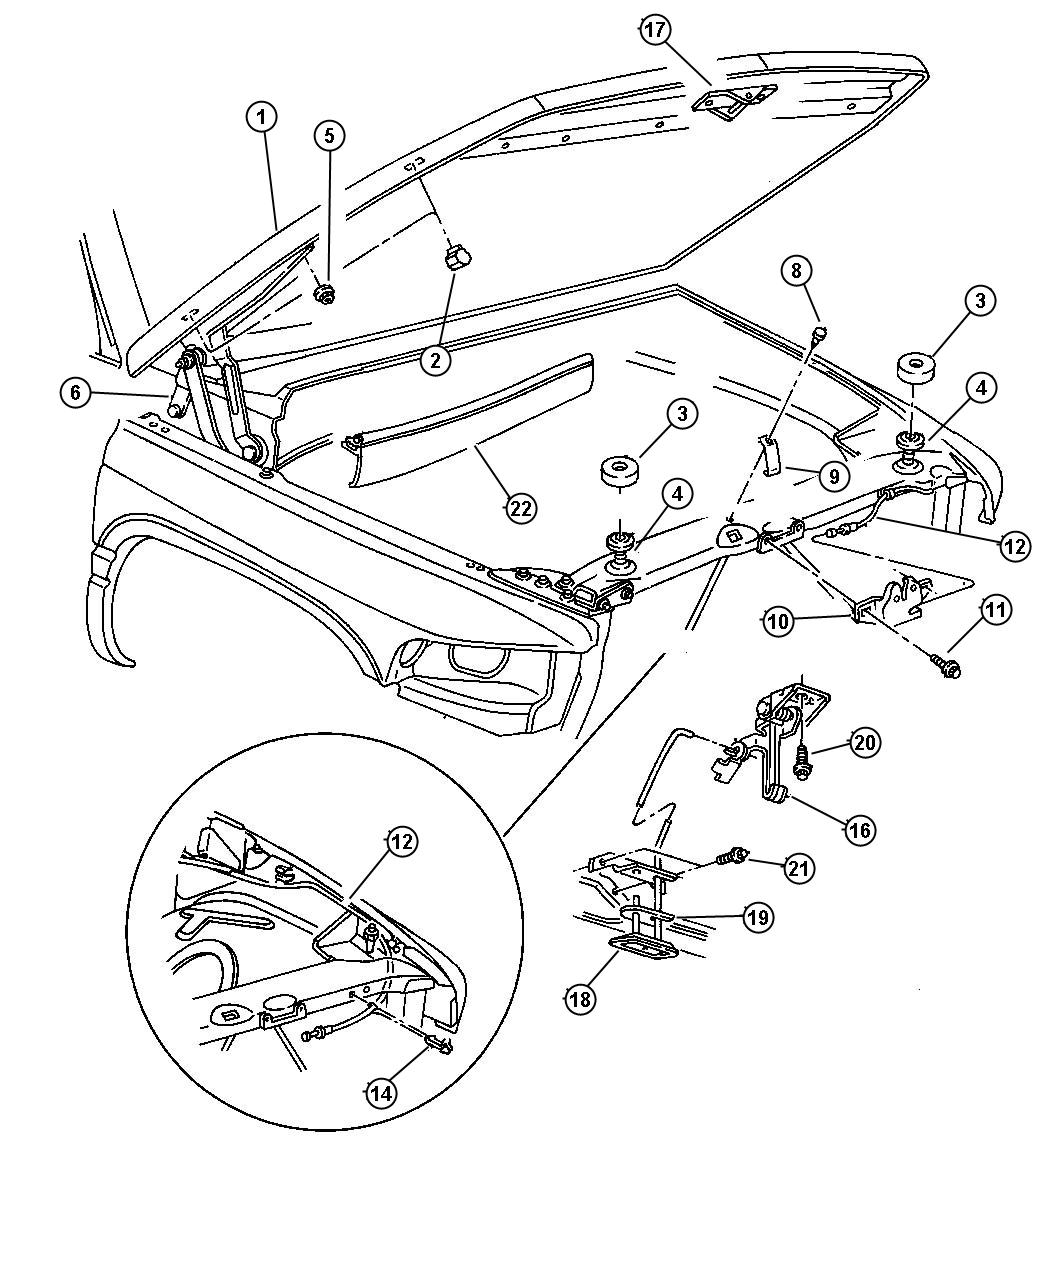 2002 Dodge Dakota Guide  Hood Safety  Body  Release